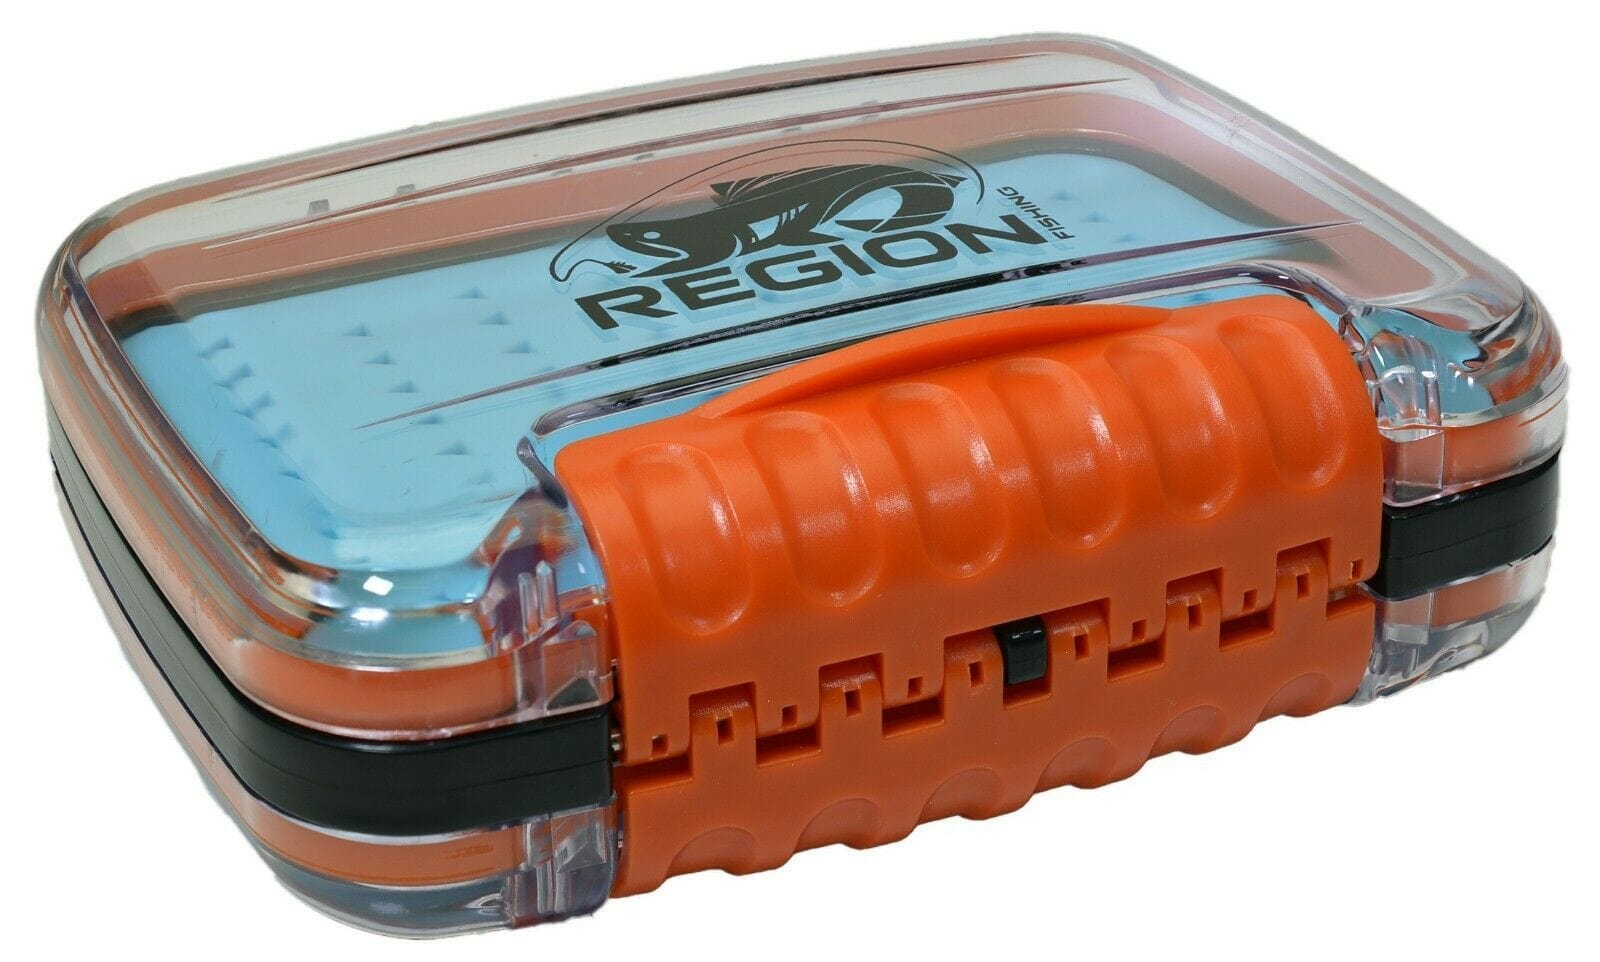 Double Sided Fly Fishing Fly Box, Silicone insert, Waterproof & Compact